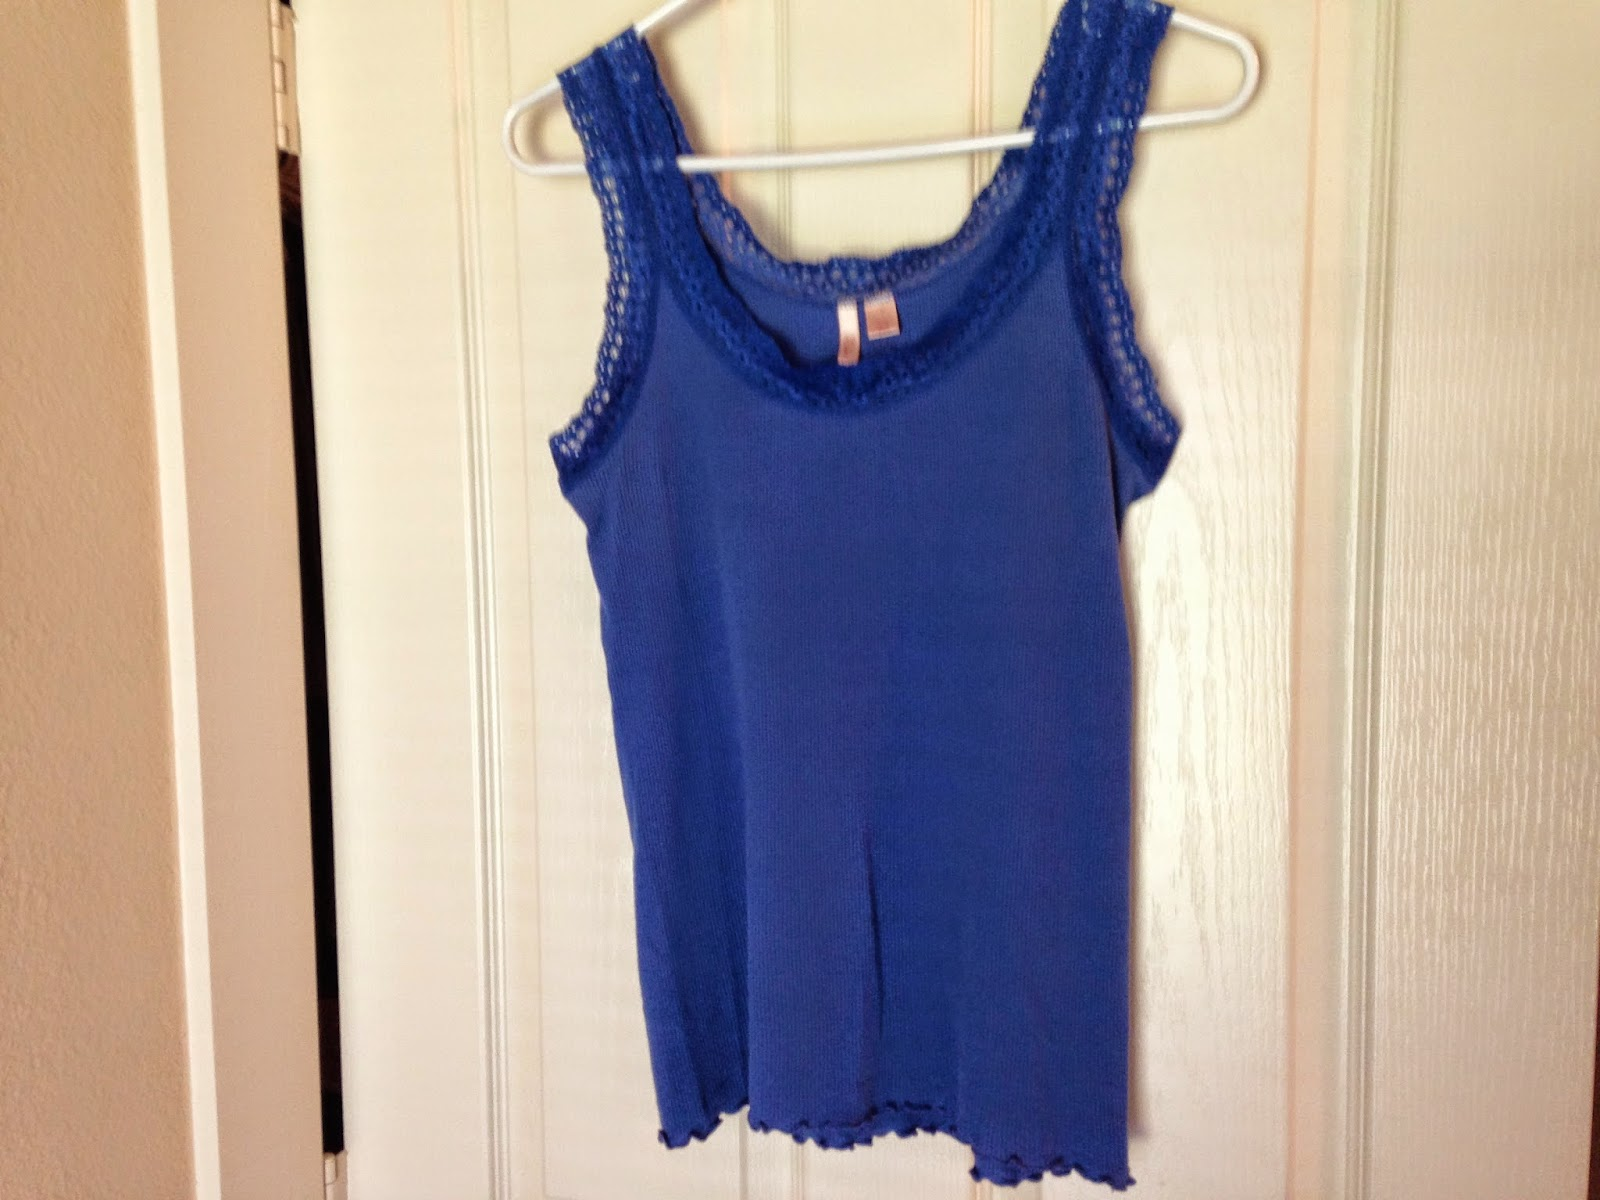 Ulterior Alterations: Refashioned Tank from Men's Button Down & Lacey Tank